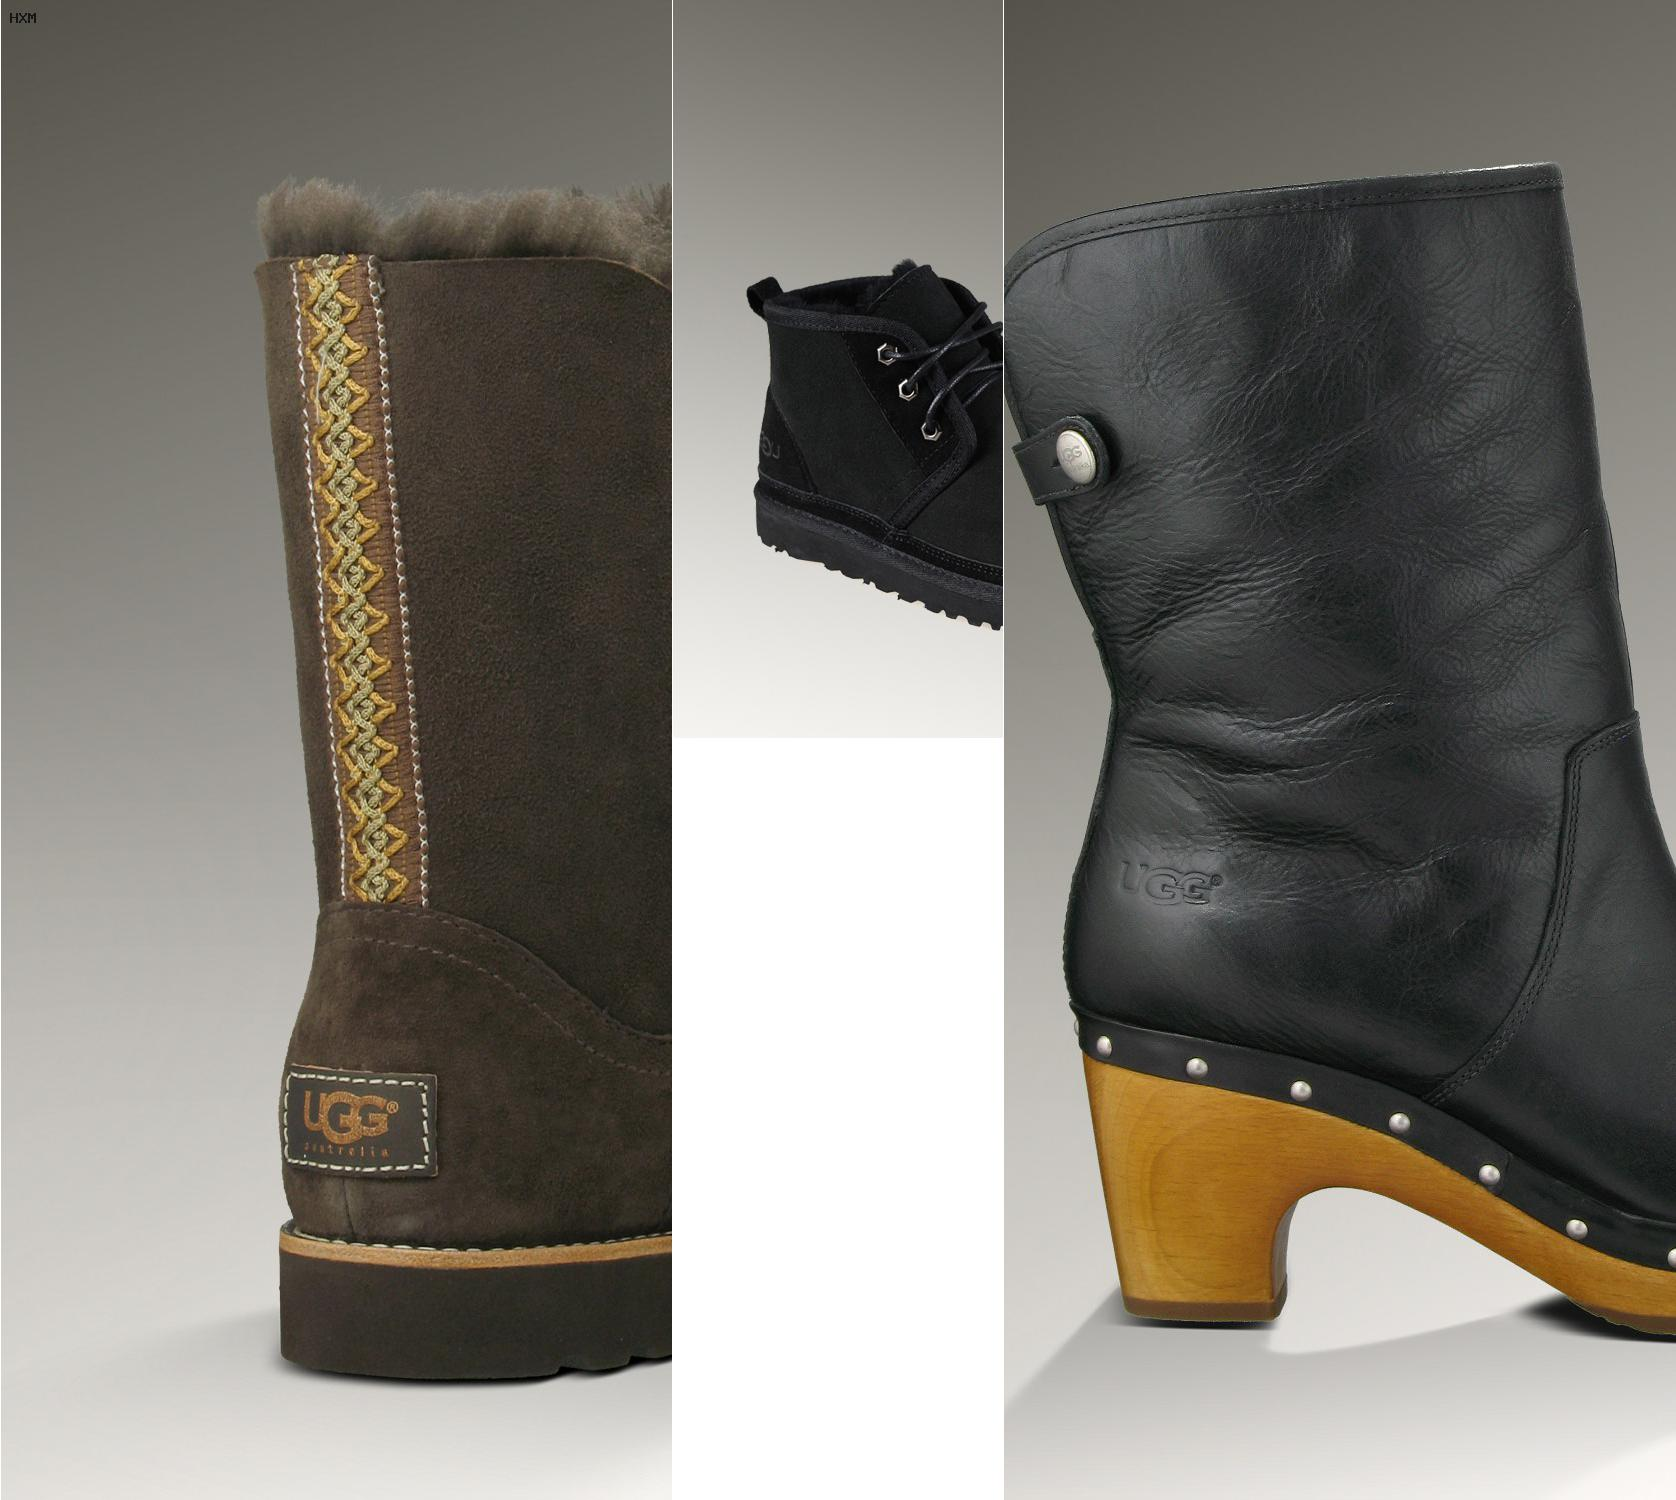 ugg outlet opiniones